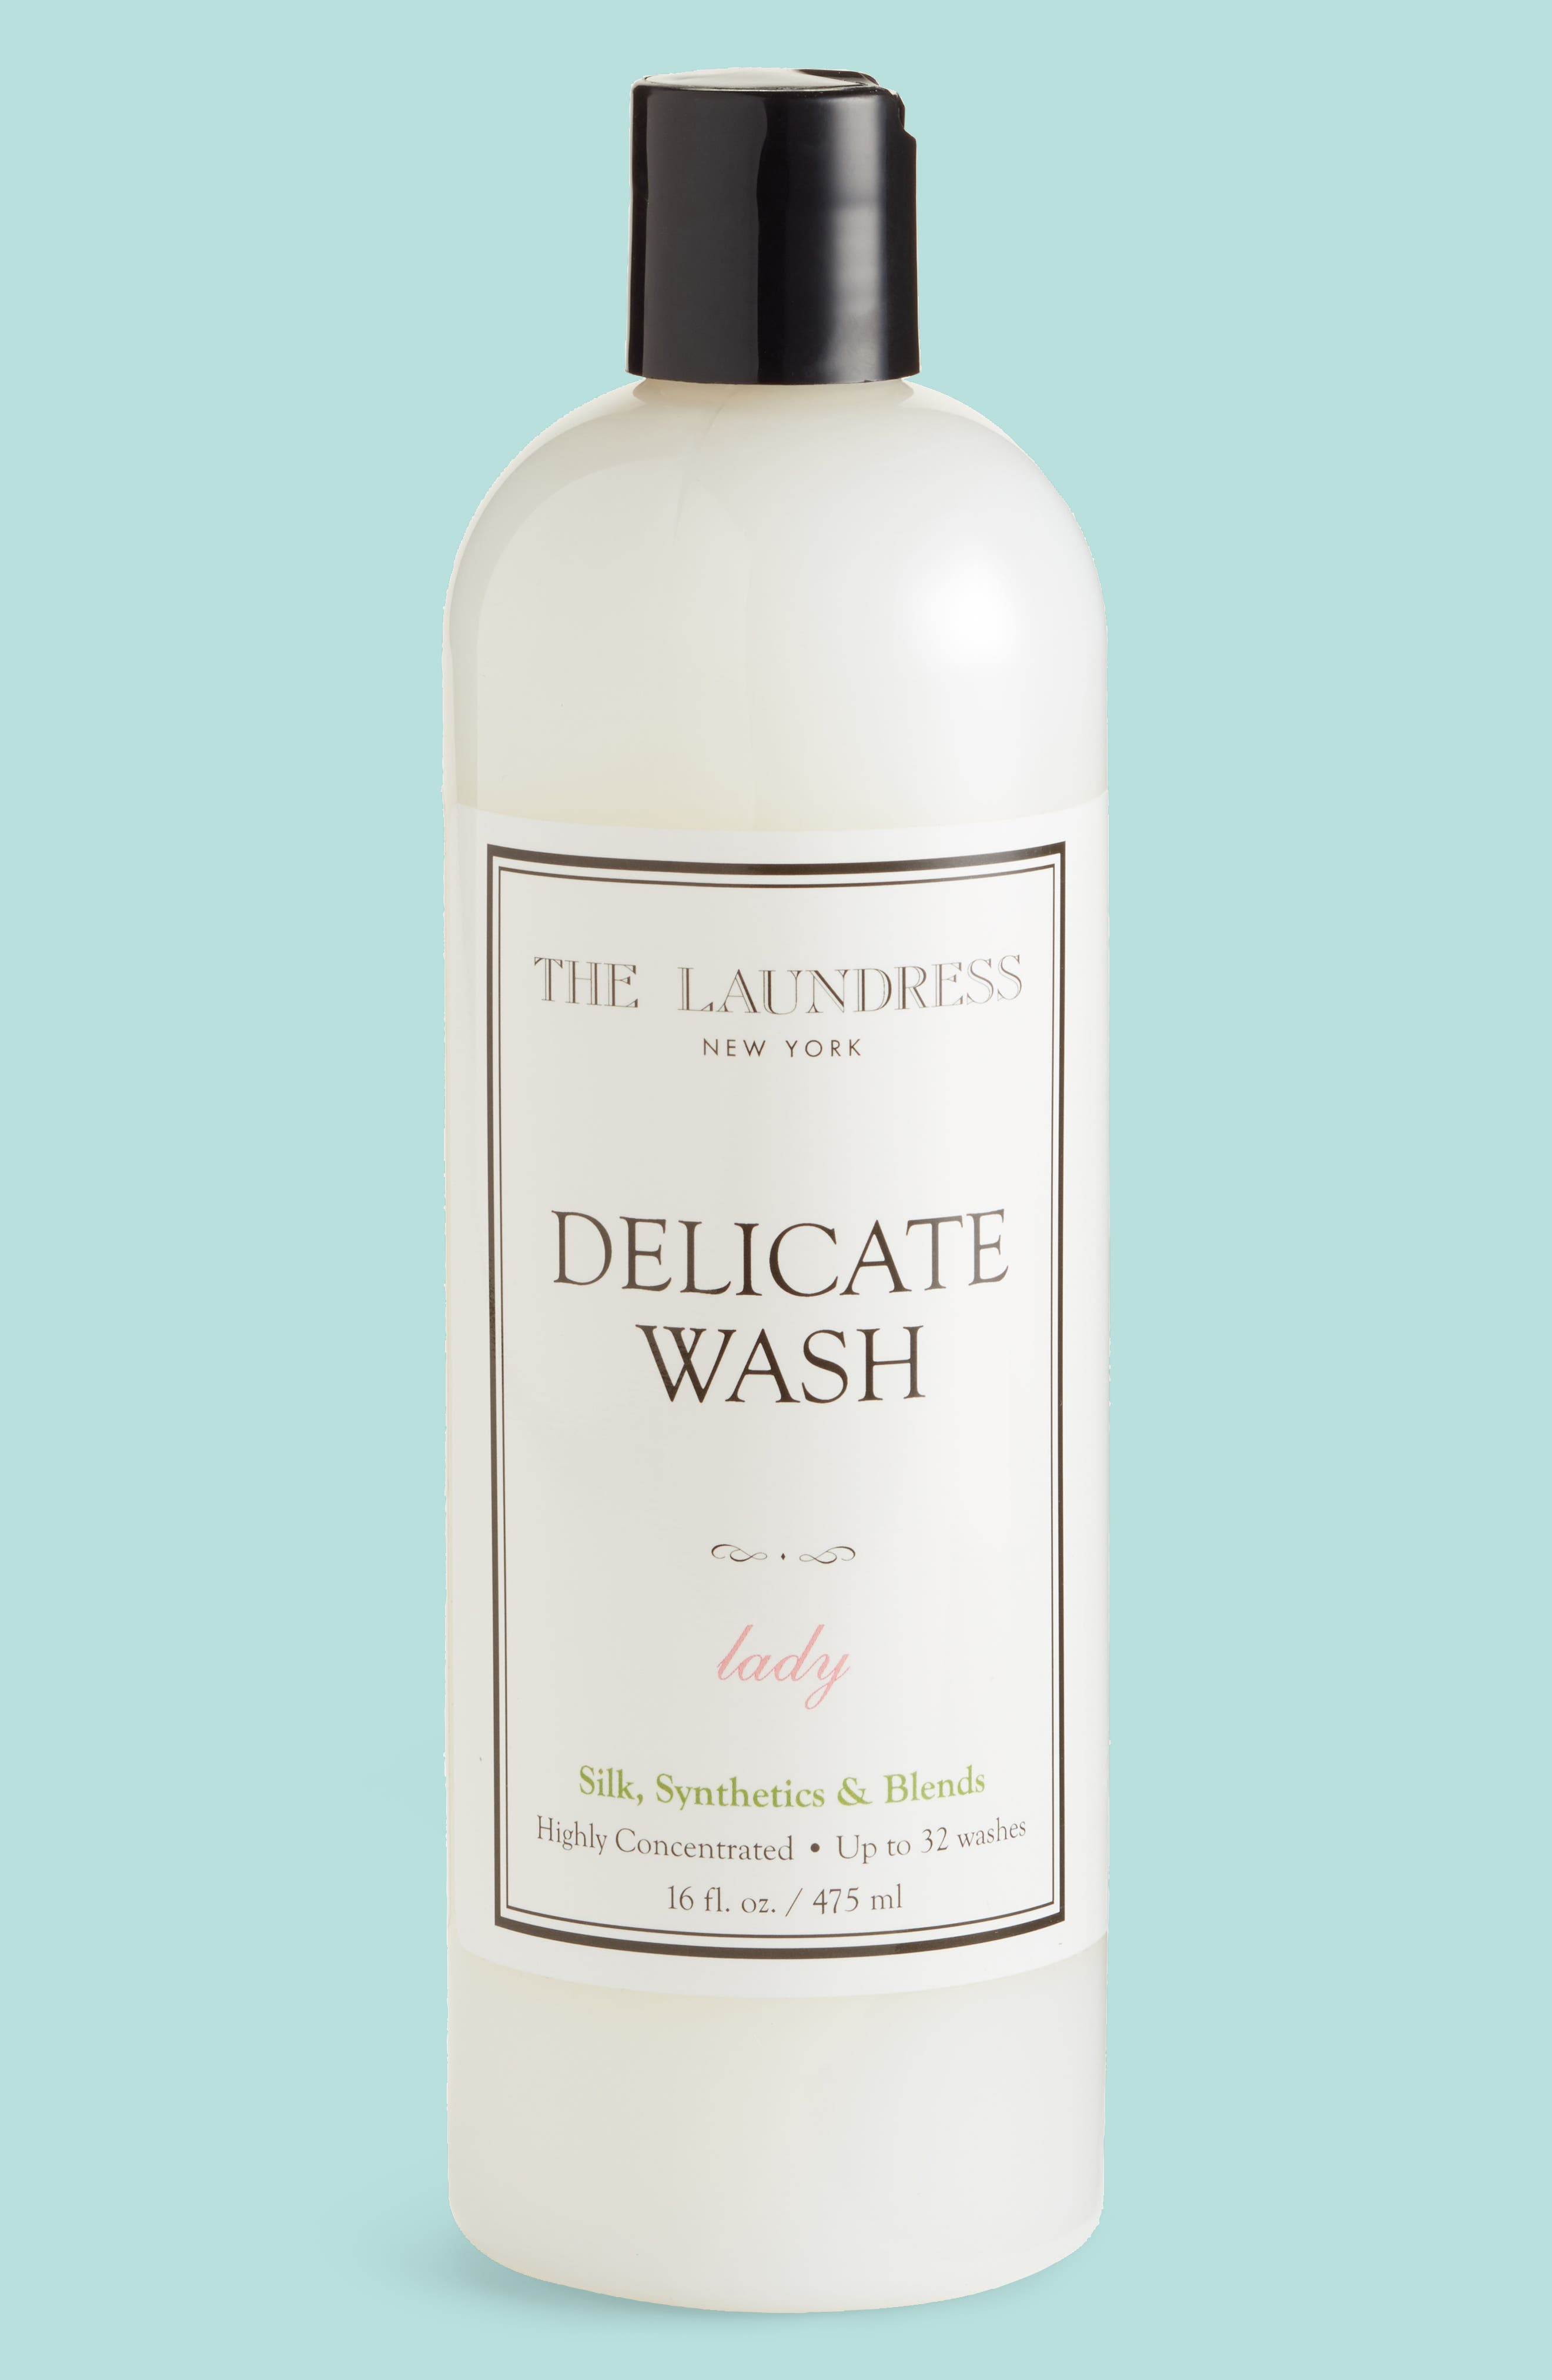 The Laundress Lady Delicate Wash